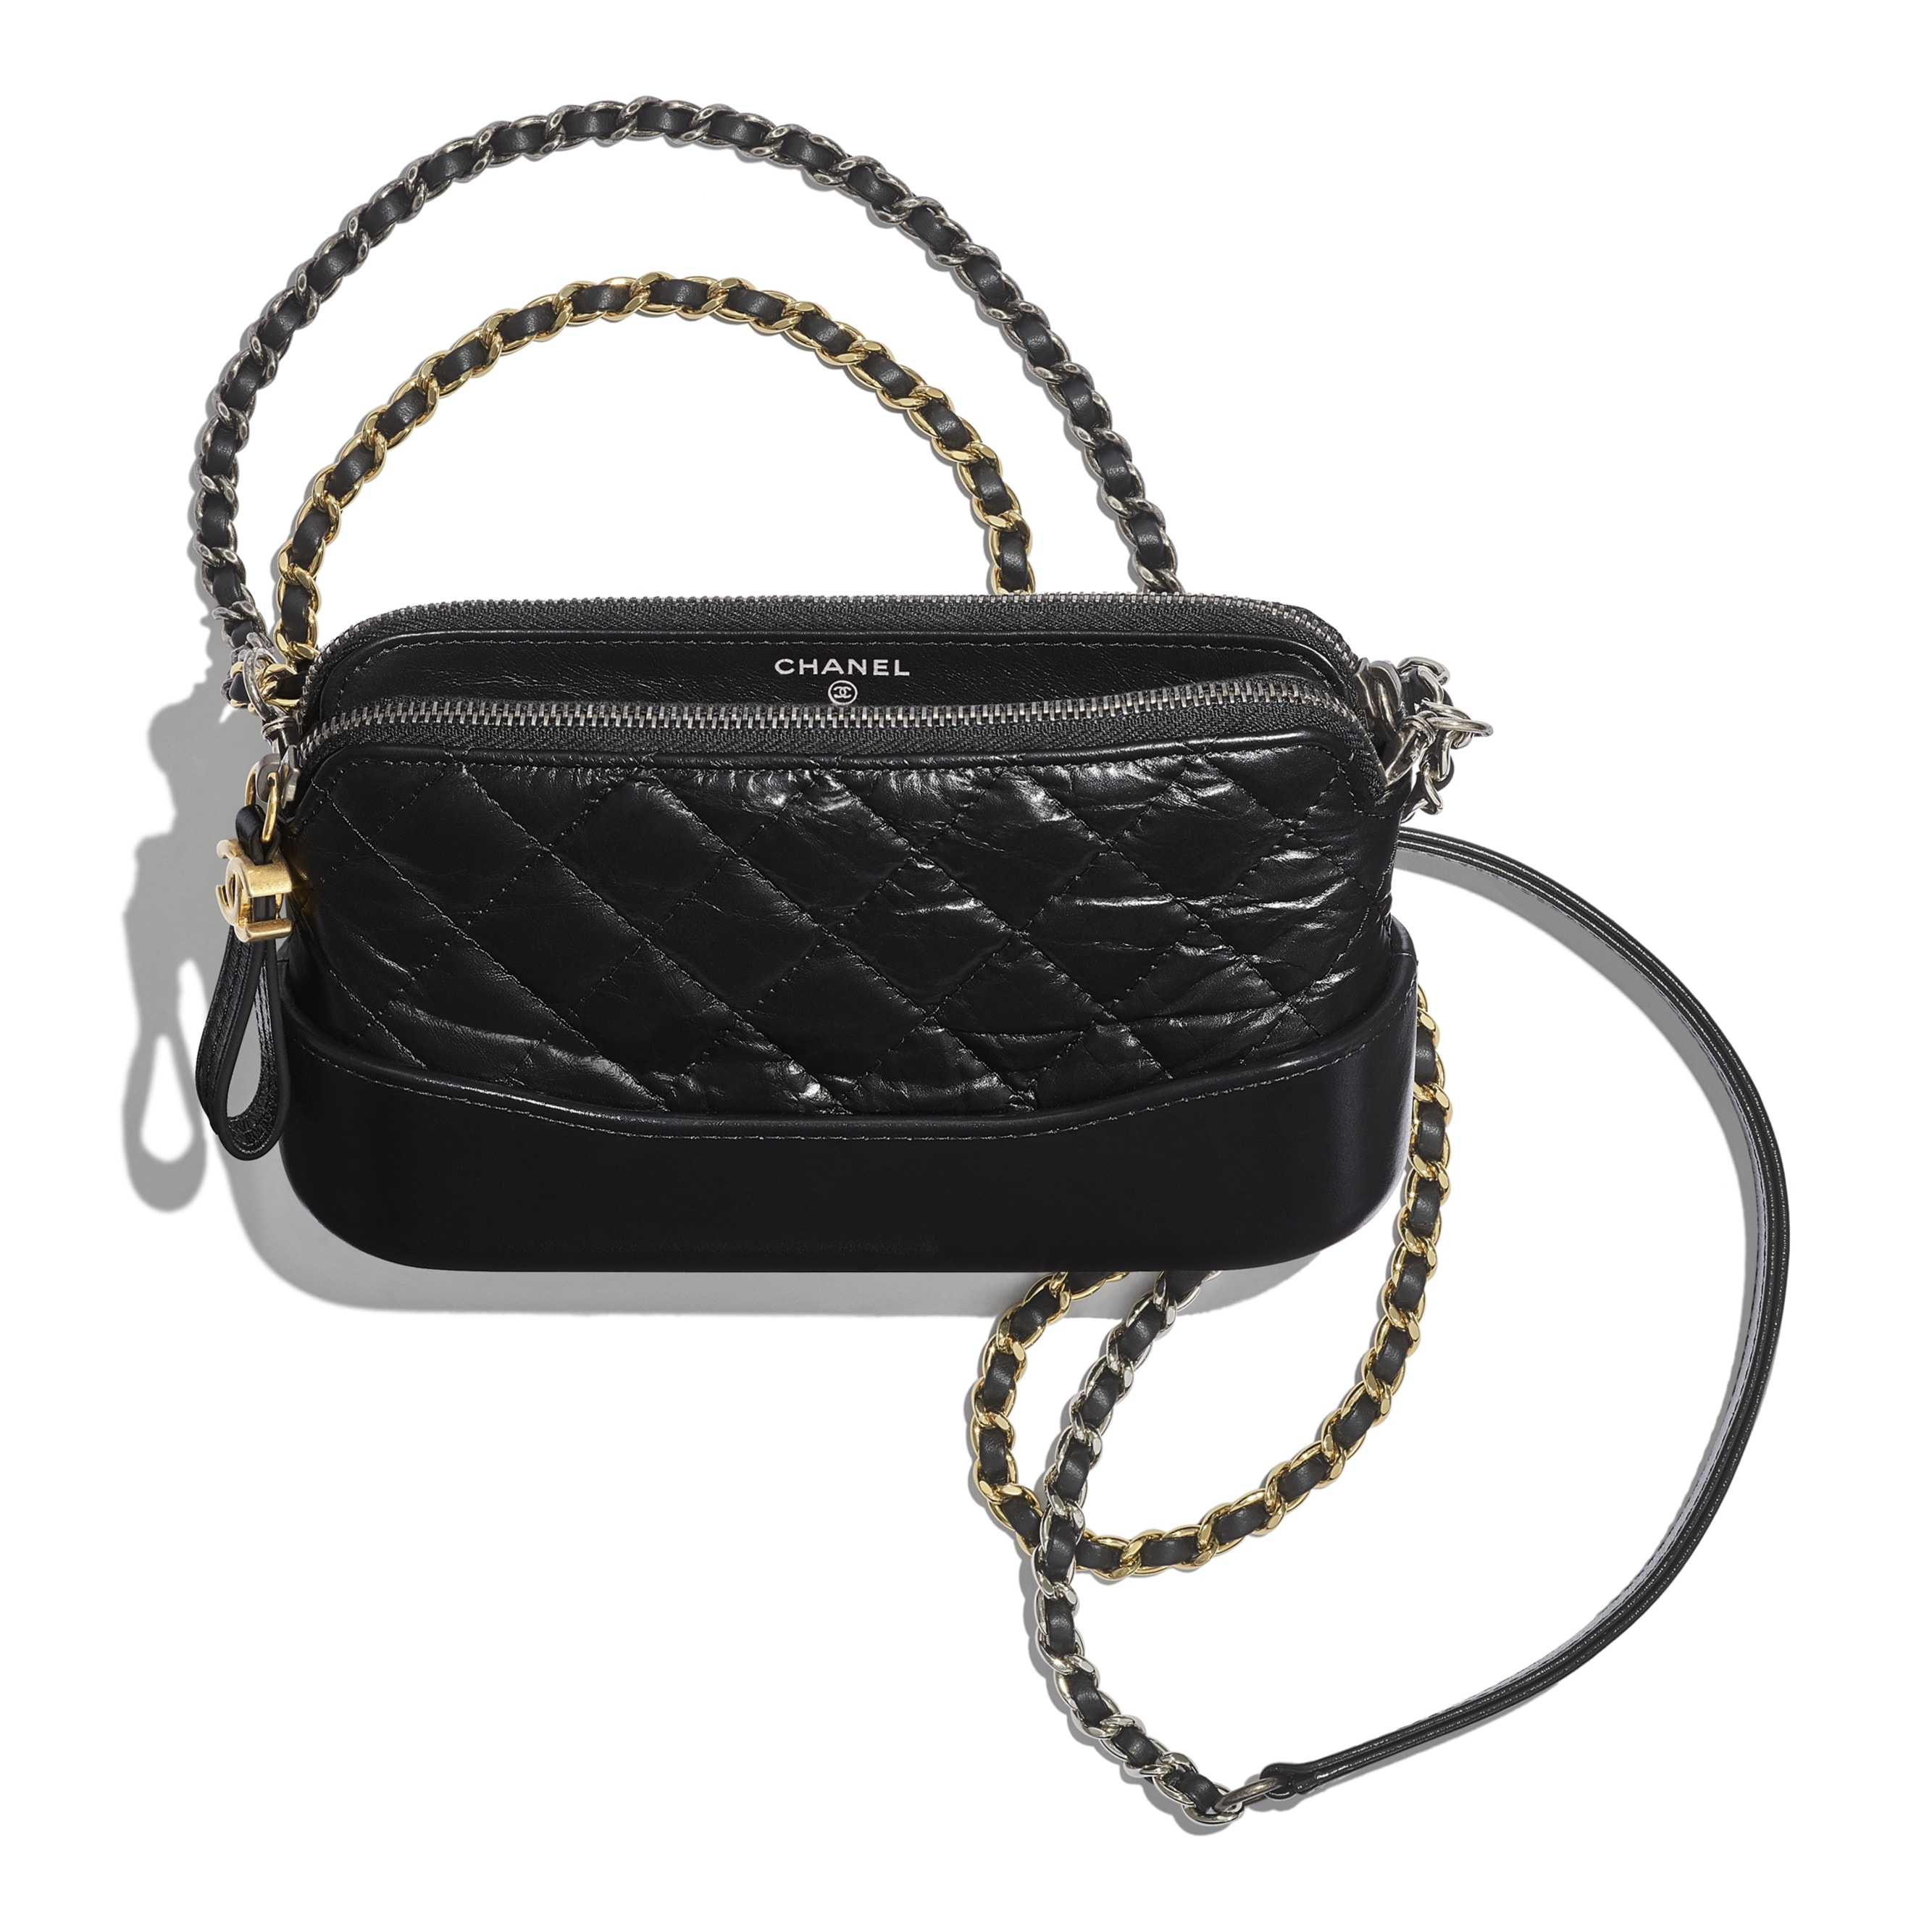 Clutch With Chain - Black - Aged Calfskin, Smooth Calfskin, Gold-Tone, Silver-Tone & Ruthenium-Finish Metal - CHANEL - Other view - see standard sized version